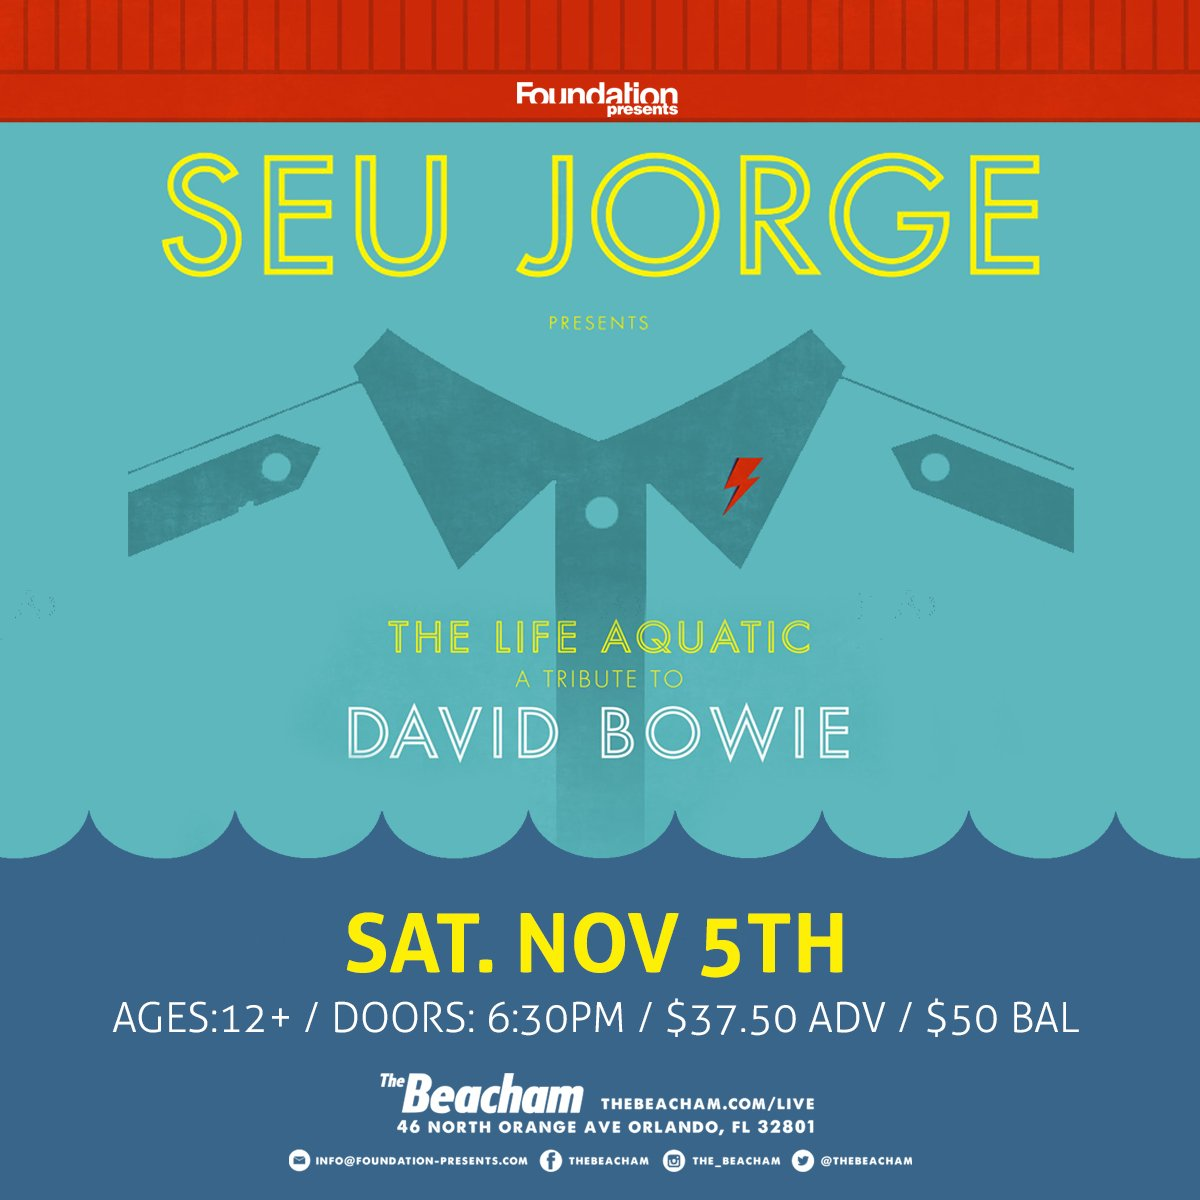 TICKET GIVEAWAY: RETWEET & WIN a pair of Seu Jorge tickets TOMORROW at The Beacham! https://t.co/A6IFggilTR https://t.co/Fz4U1zSg2i